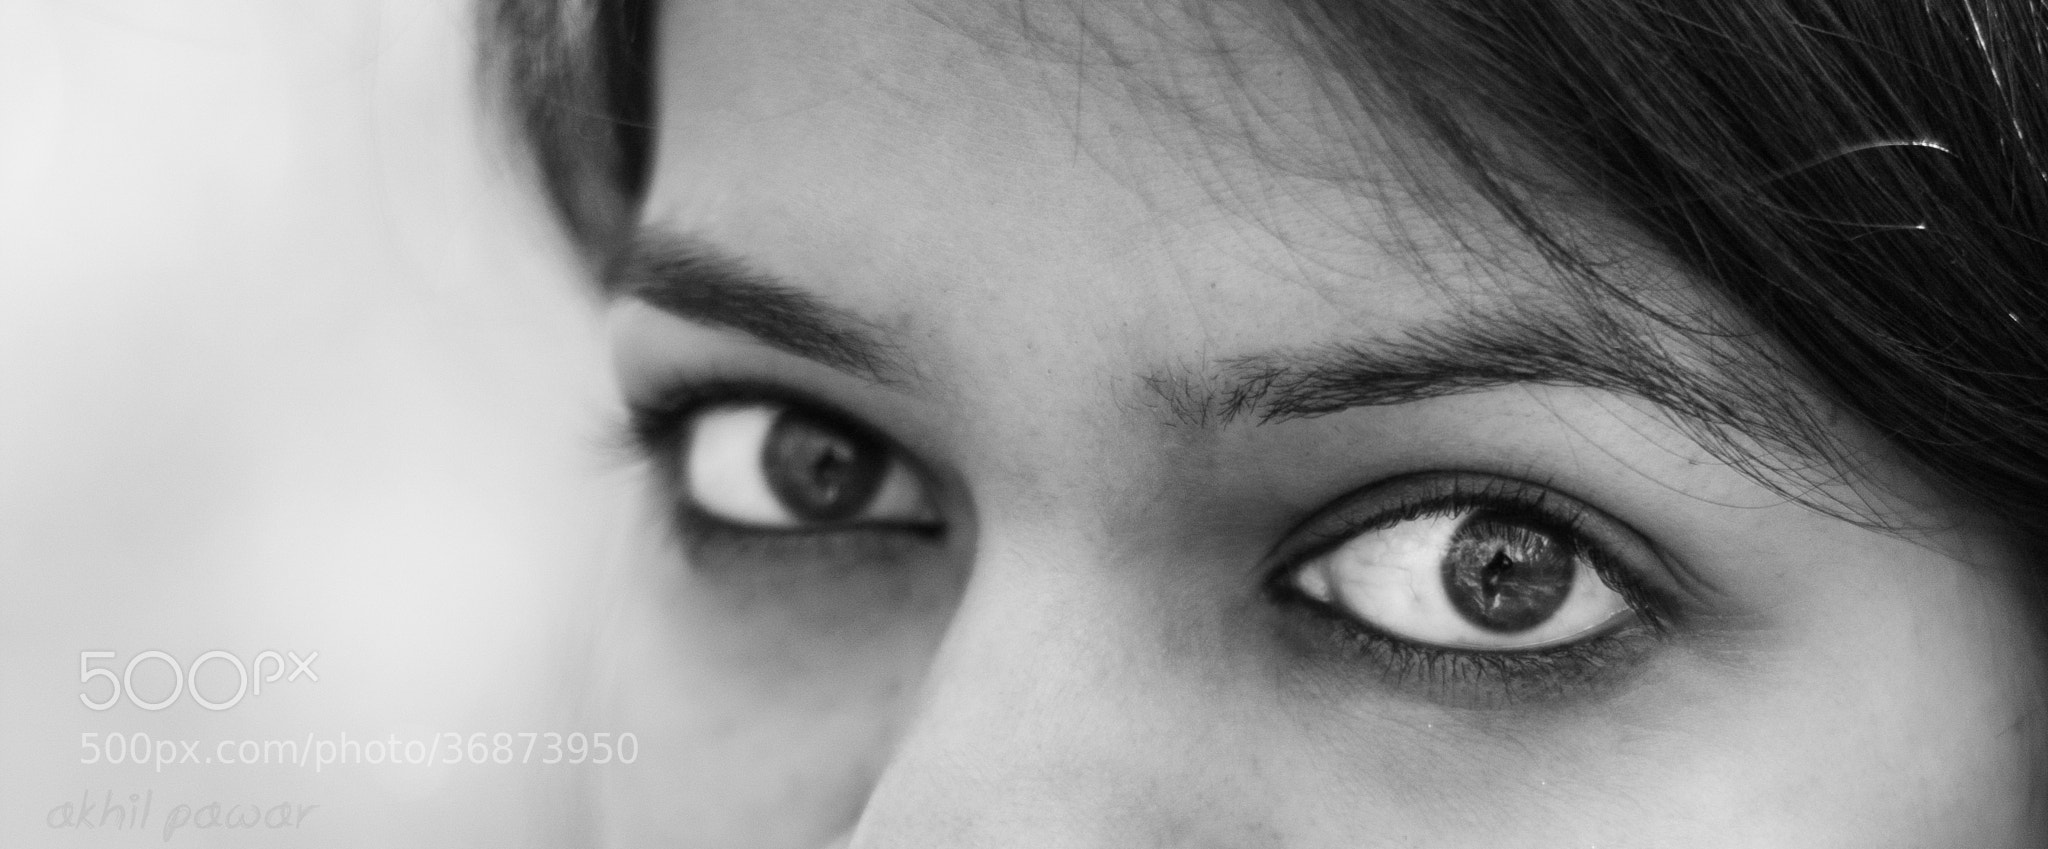 Photograph Look through my eyes by Akhil Pawar on 500px